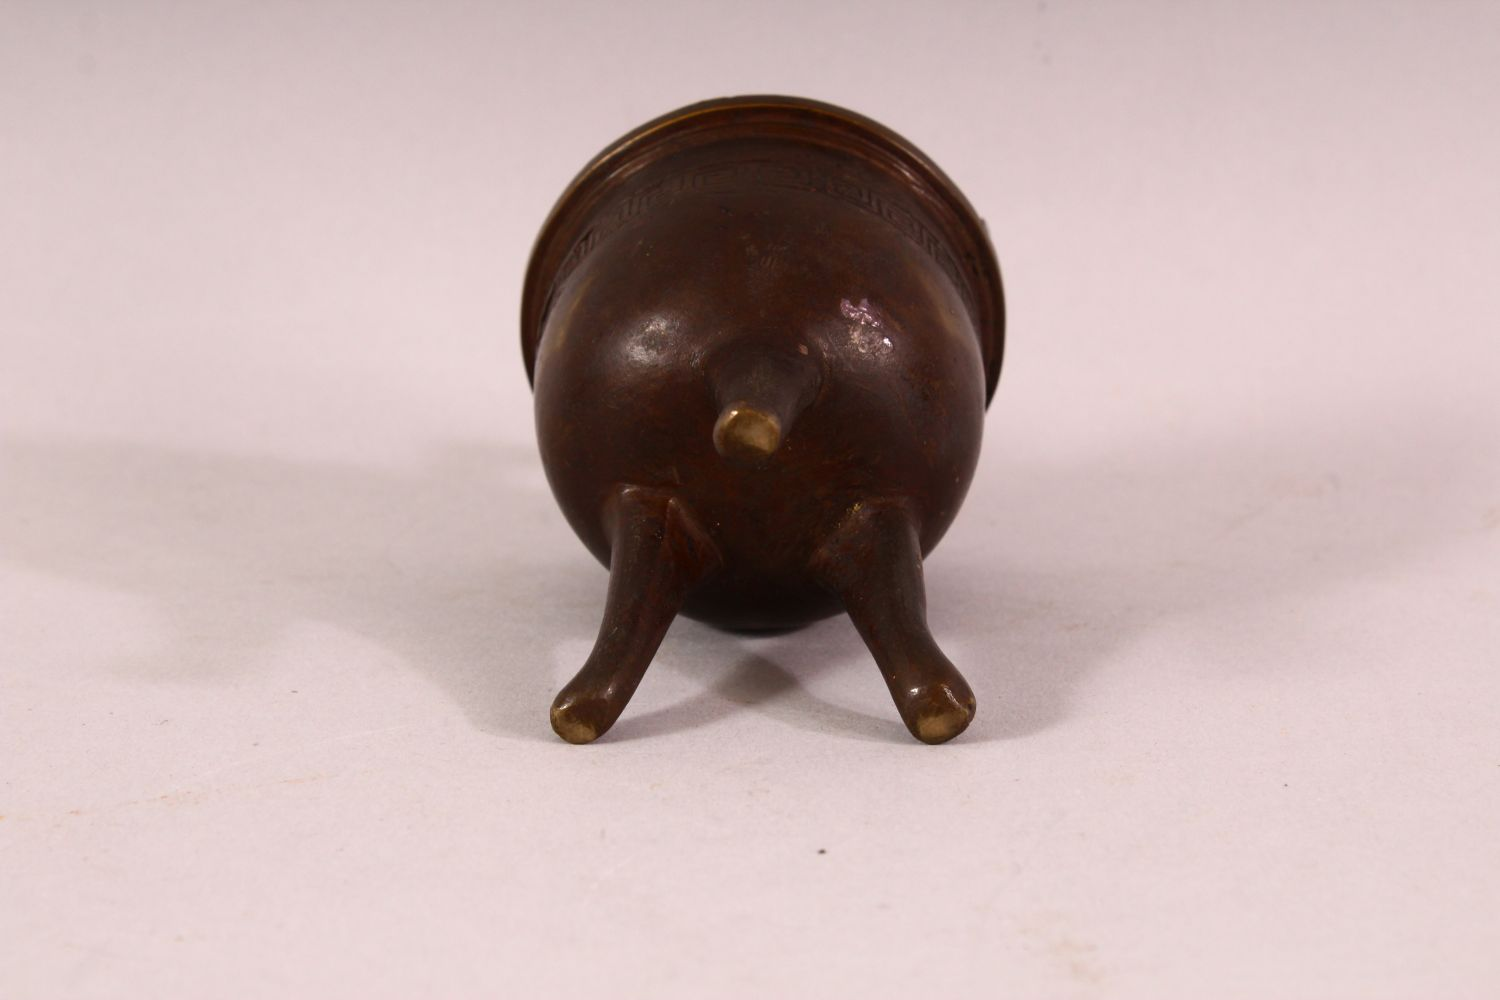 A SMALL 19TH CENTURY CHINESE TWIN HANDLE TRIPOD CENSER, the body with greek key decoration, 9.5cm - Image 5 of 5